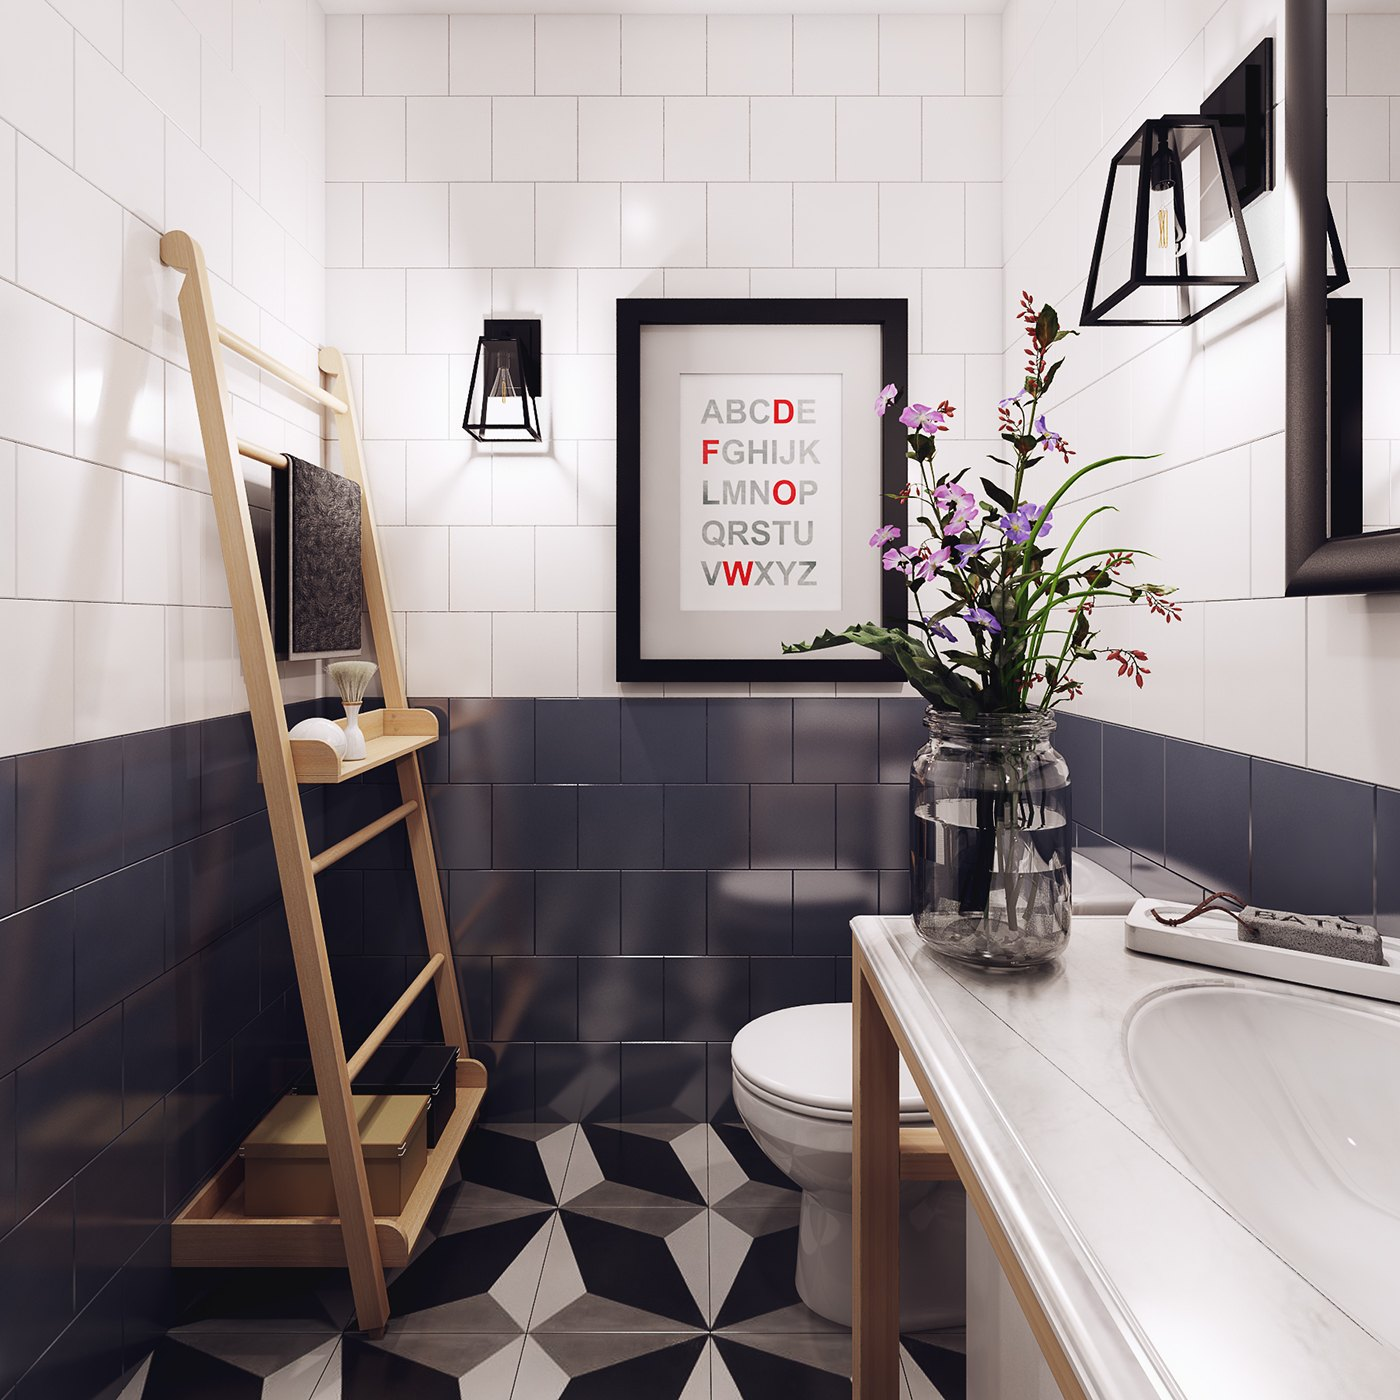 Apartment Bathroom Tiles Apartment: 10 Stunning Apartments That Show Off The Beauty Of Nordic Interior Design